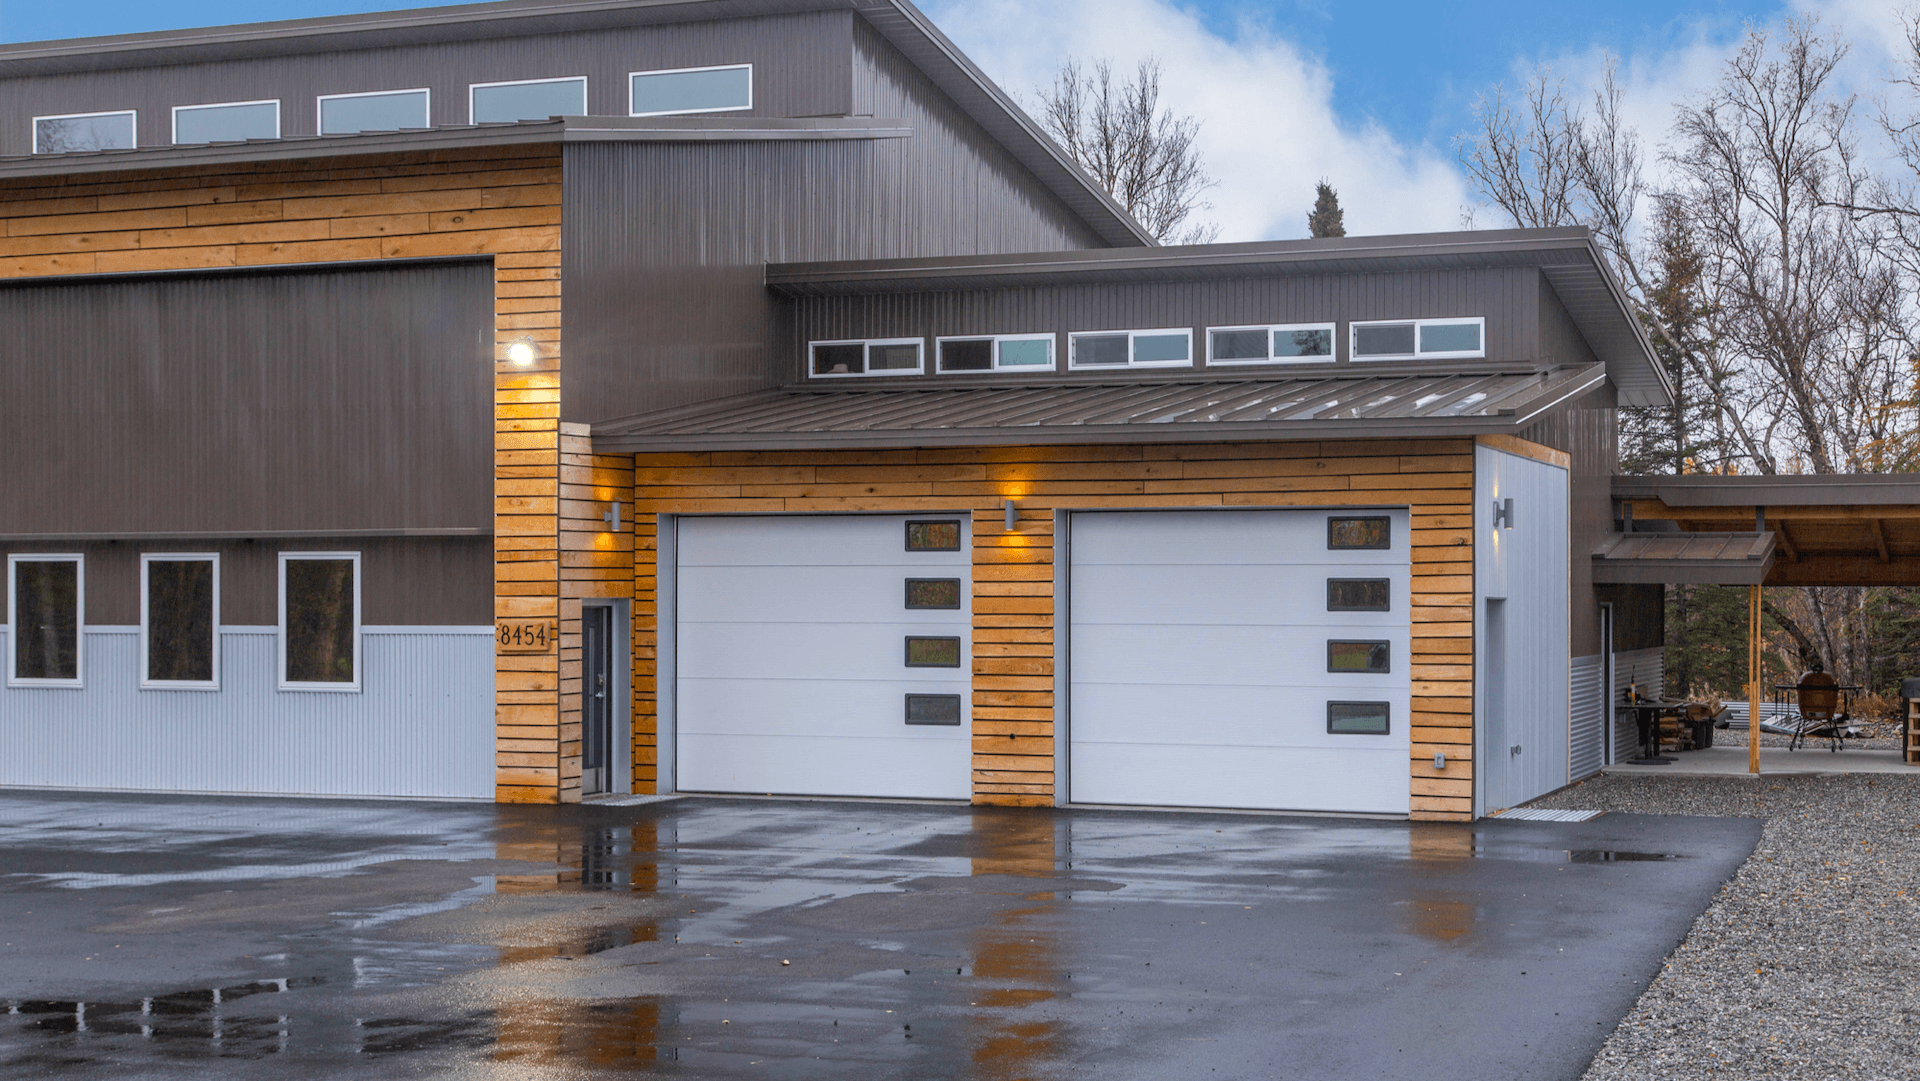 Residential ICF Hangar Home Construction by Remote Alaska Solutions